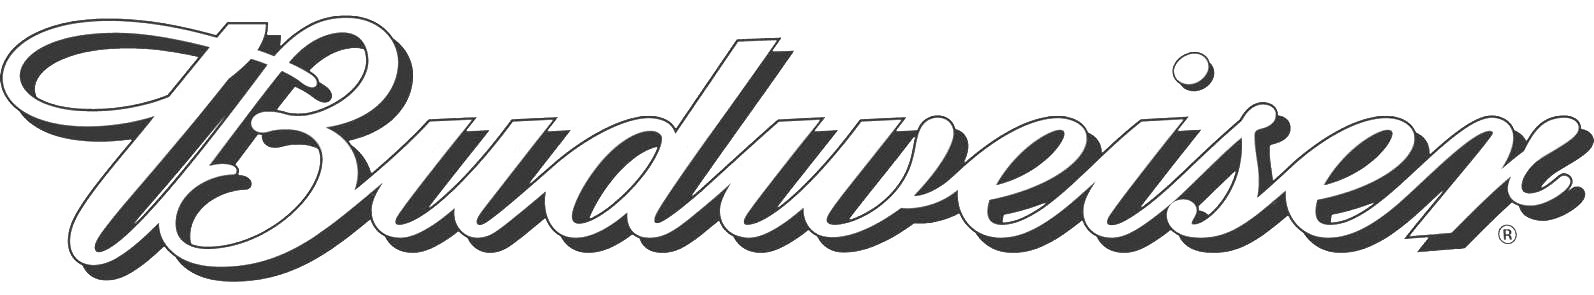 Copy Of Bud Racing Logo   Free Images at Clker com - vector